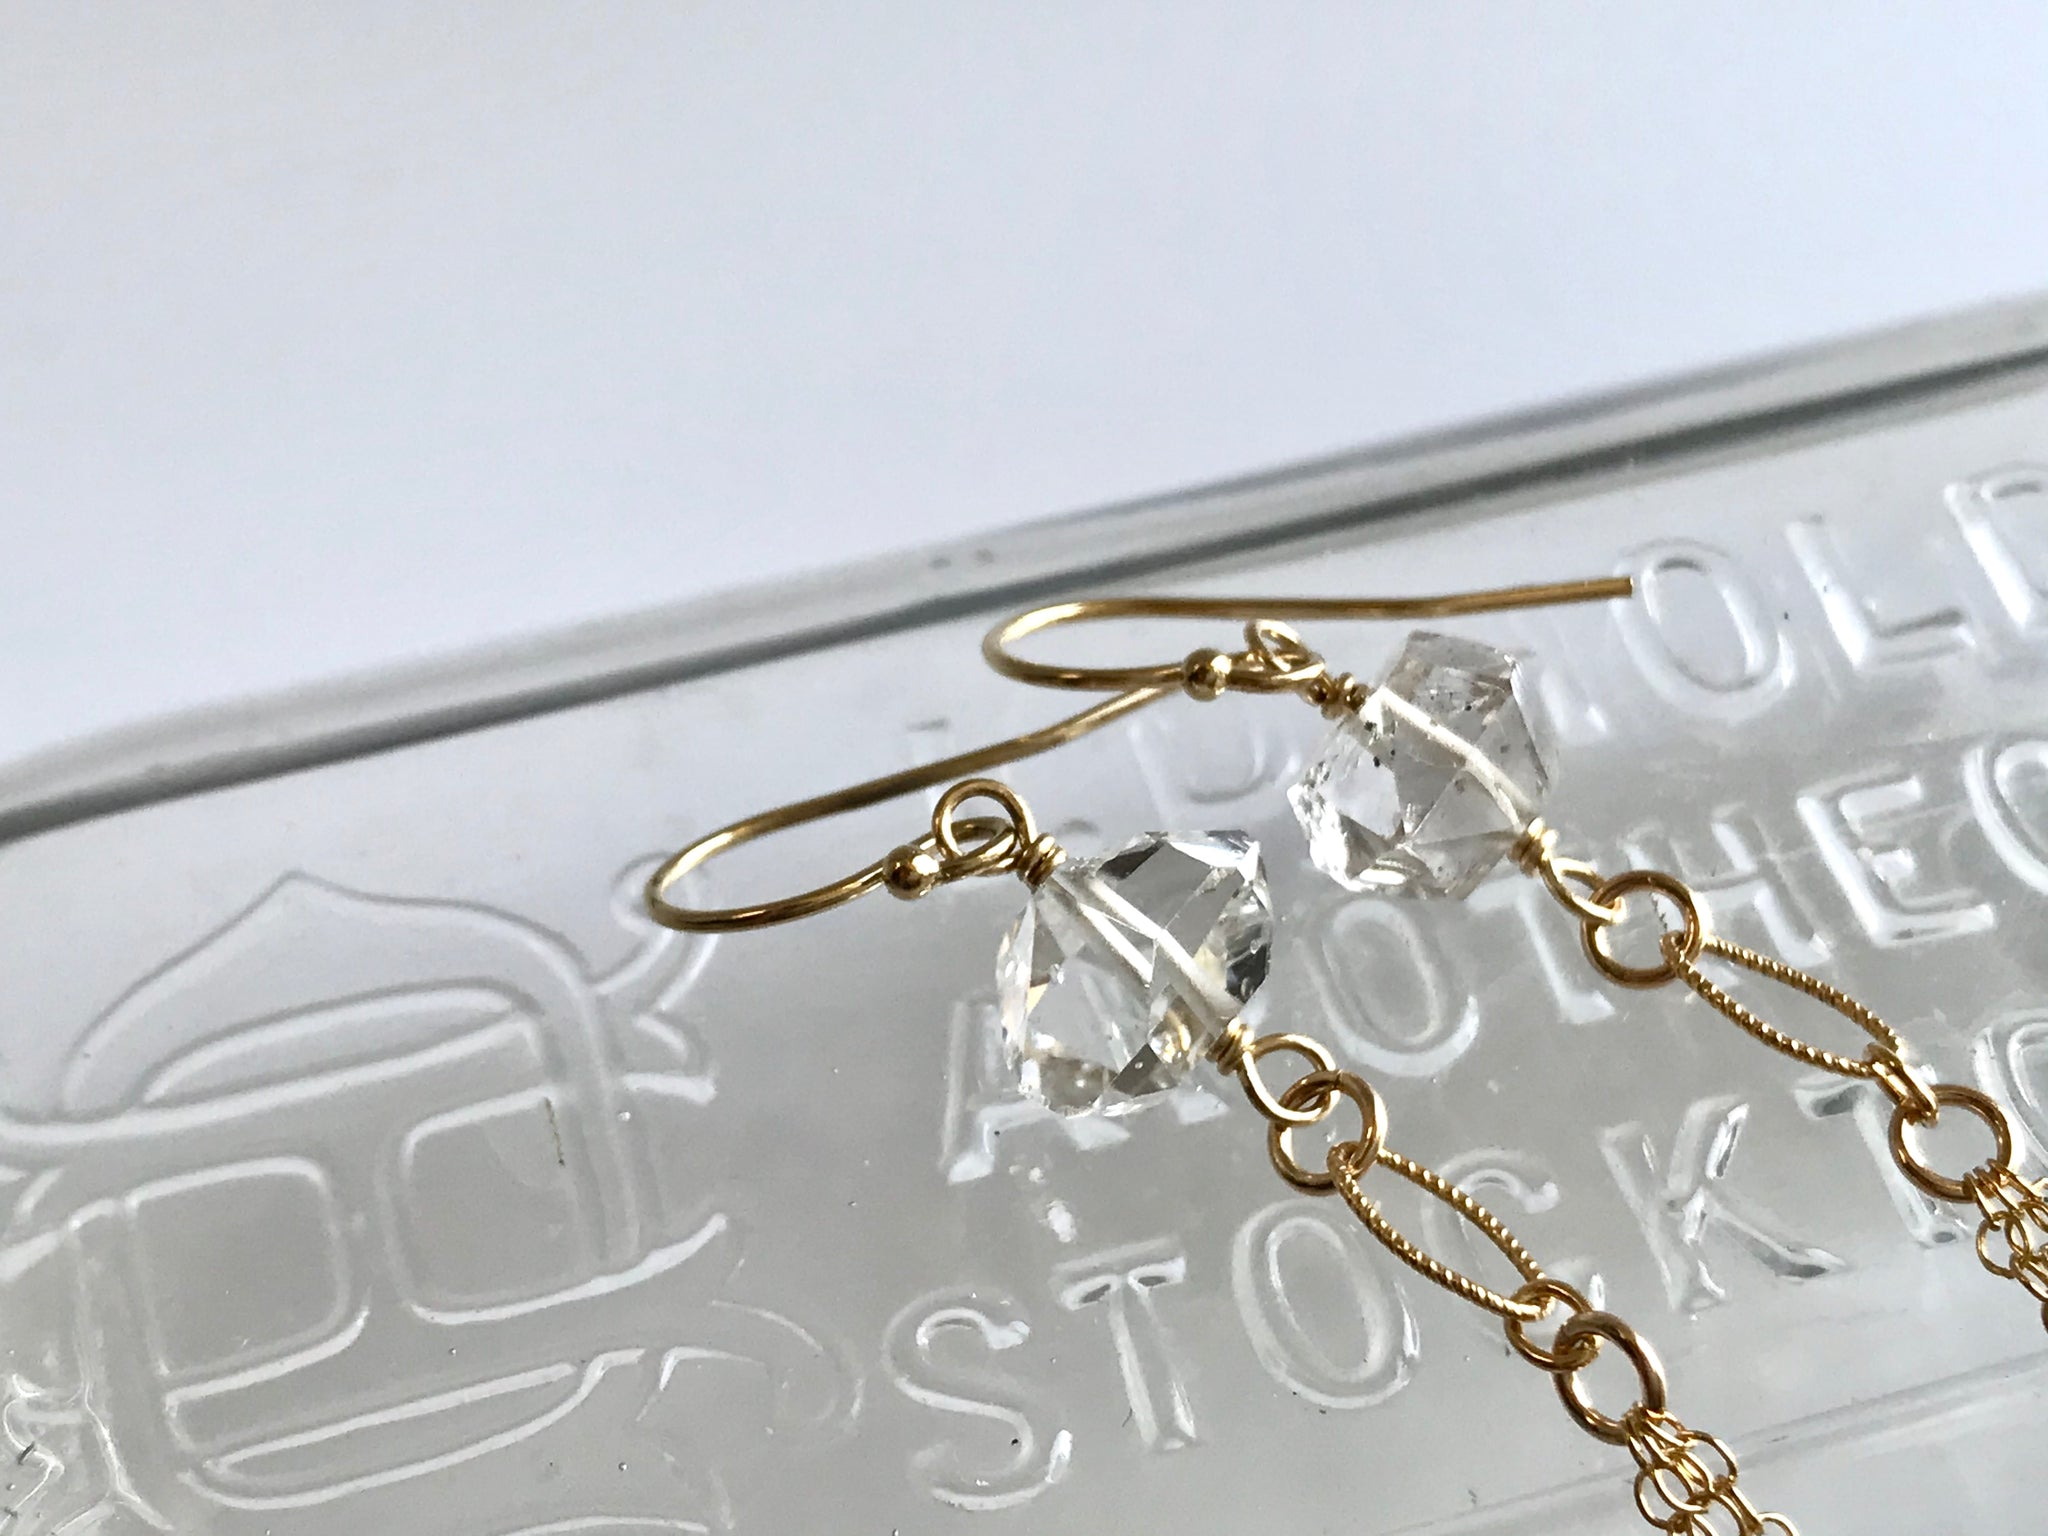 ハーキマーダイアモンド ピアス タッセル  14K Gold-Filled / Herkimer Diamond Earrings Tassel Sterling 14K Gold-Filled